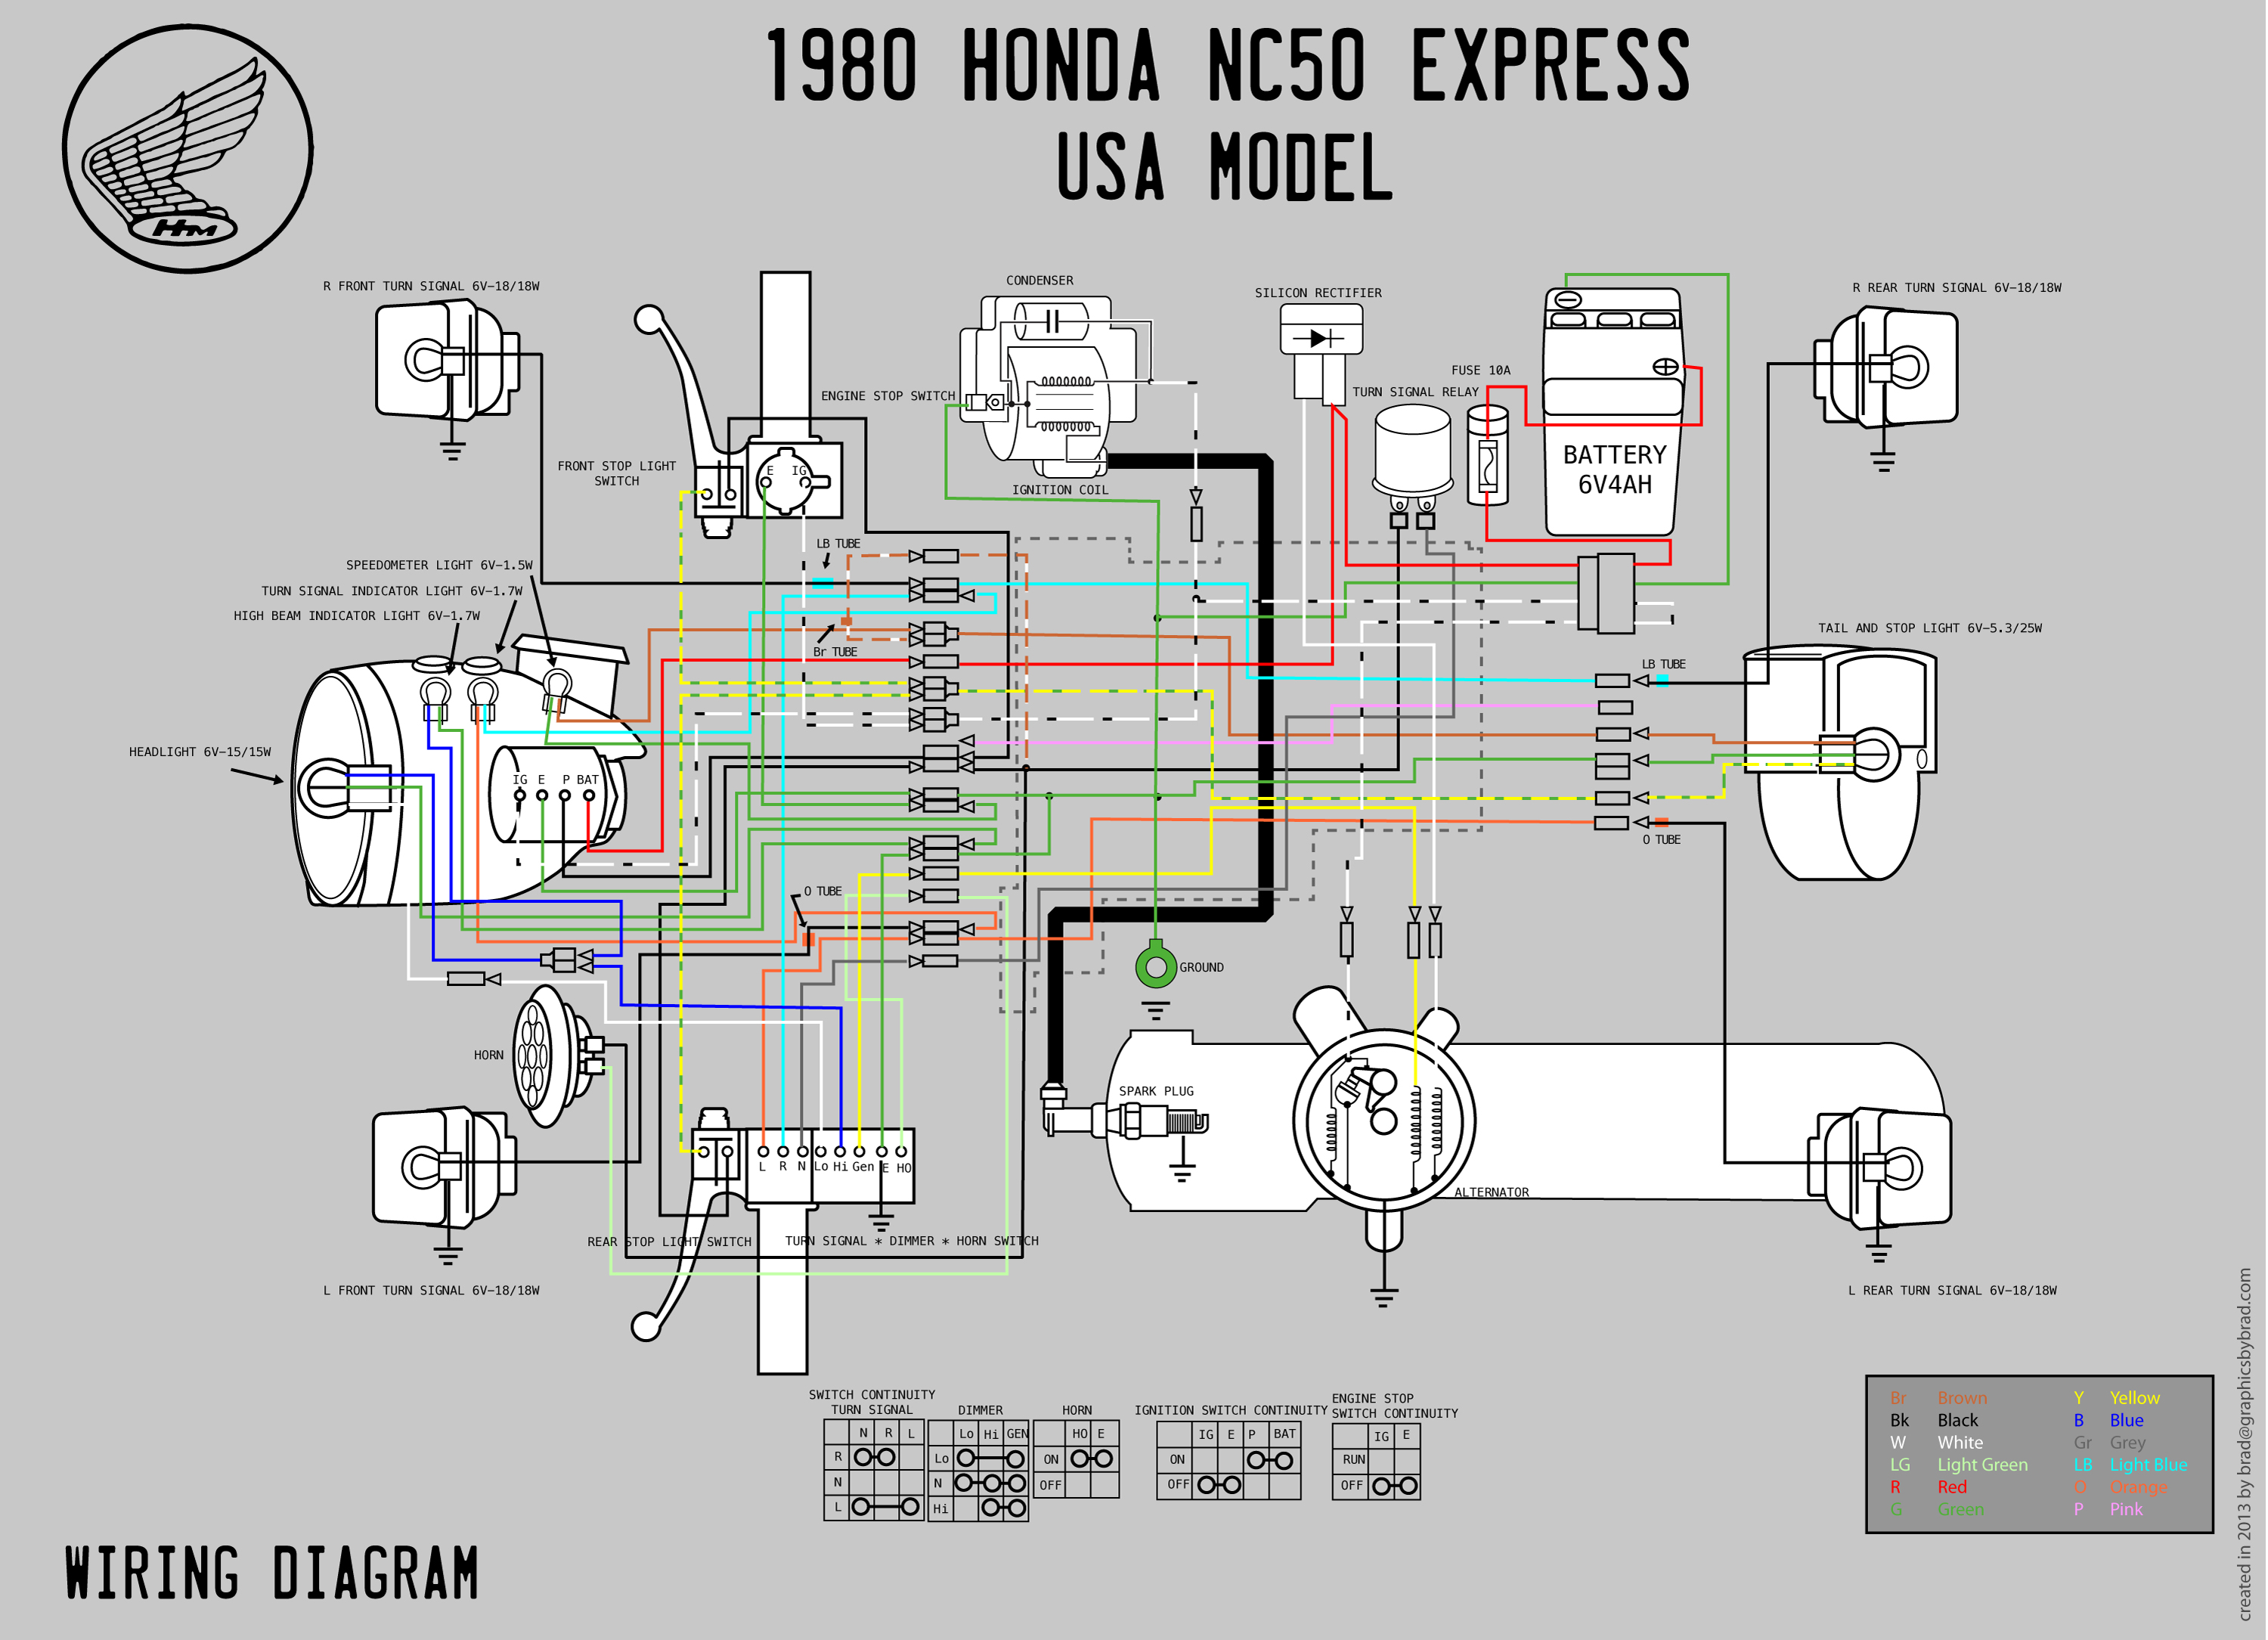 Honda Motor Scooters 49cc Wiring Opinions About Diagram Scooter Diagrams 1980 Nc50 Moped Wiki Rh Mopedarmy Com 50cc New